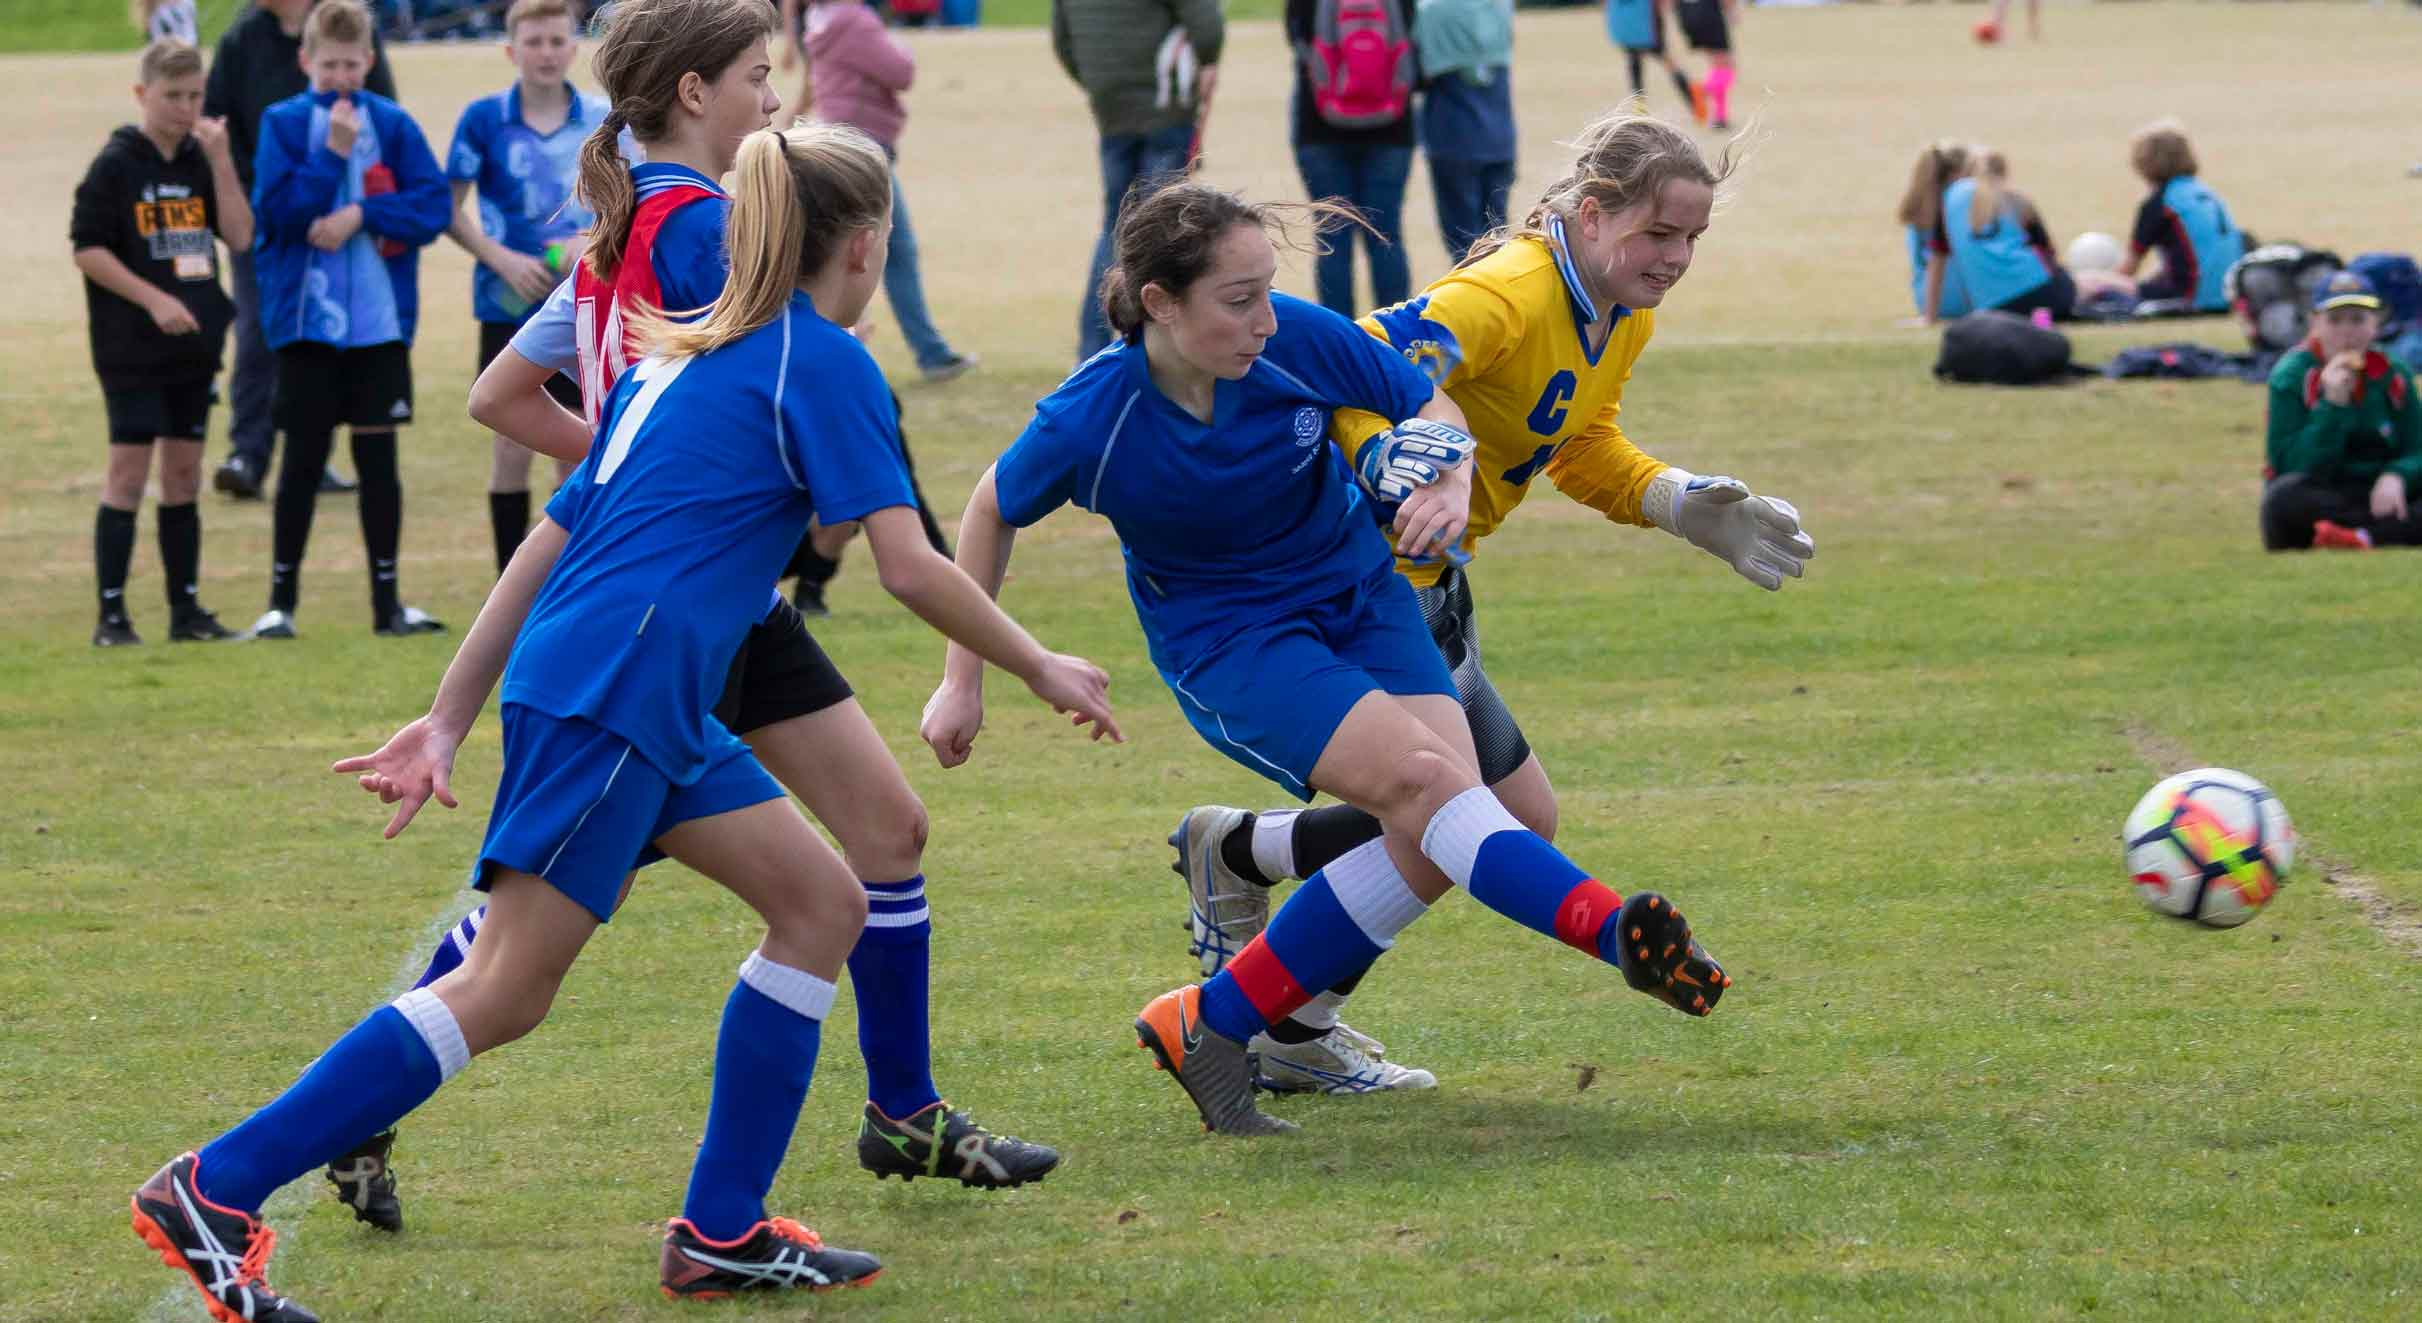 Saint-Kentigern-Girls-School-Sports-Football.jpg